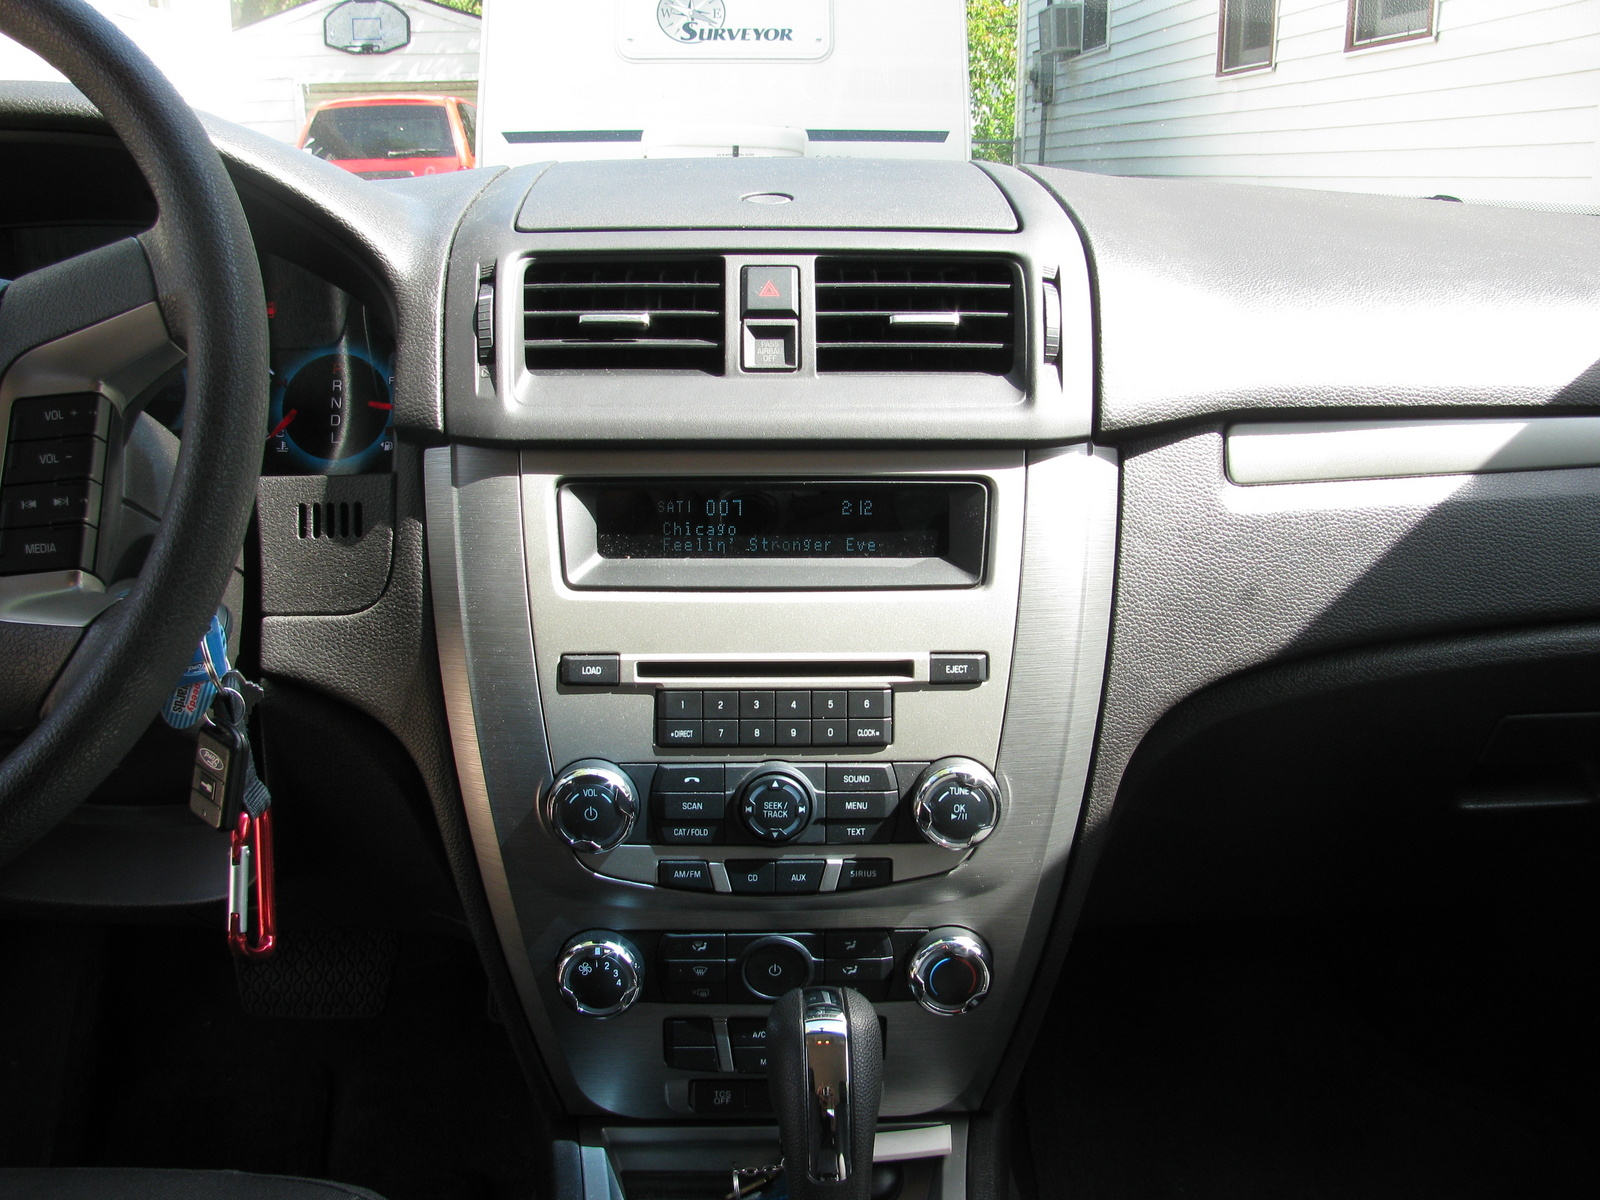 2011 ford fusion interior pictures cargurus. Black Bedroom Furniture Sets. Home Design Ideas